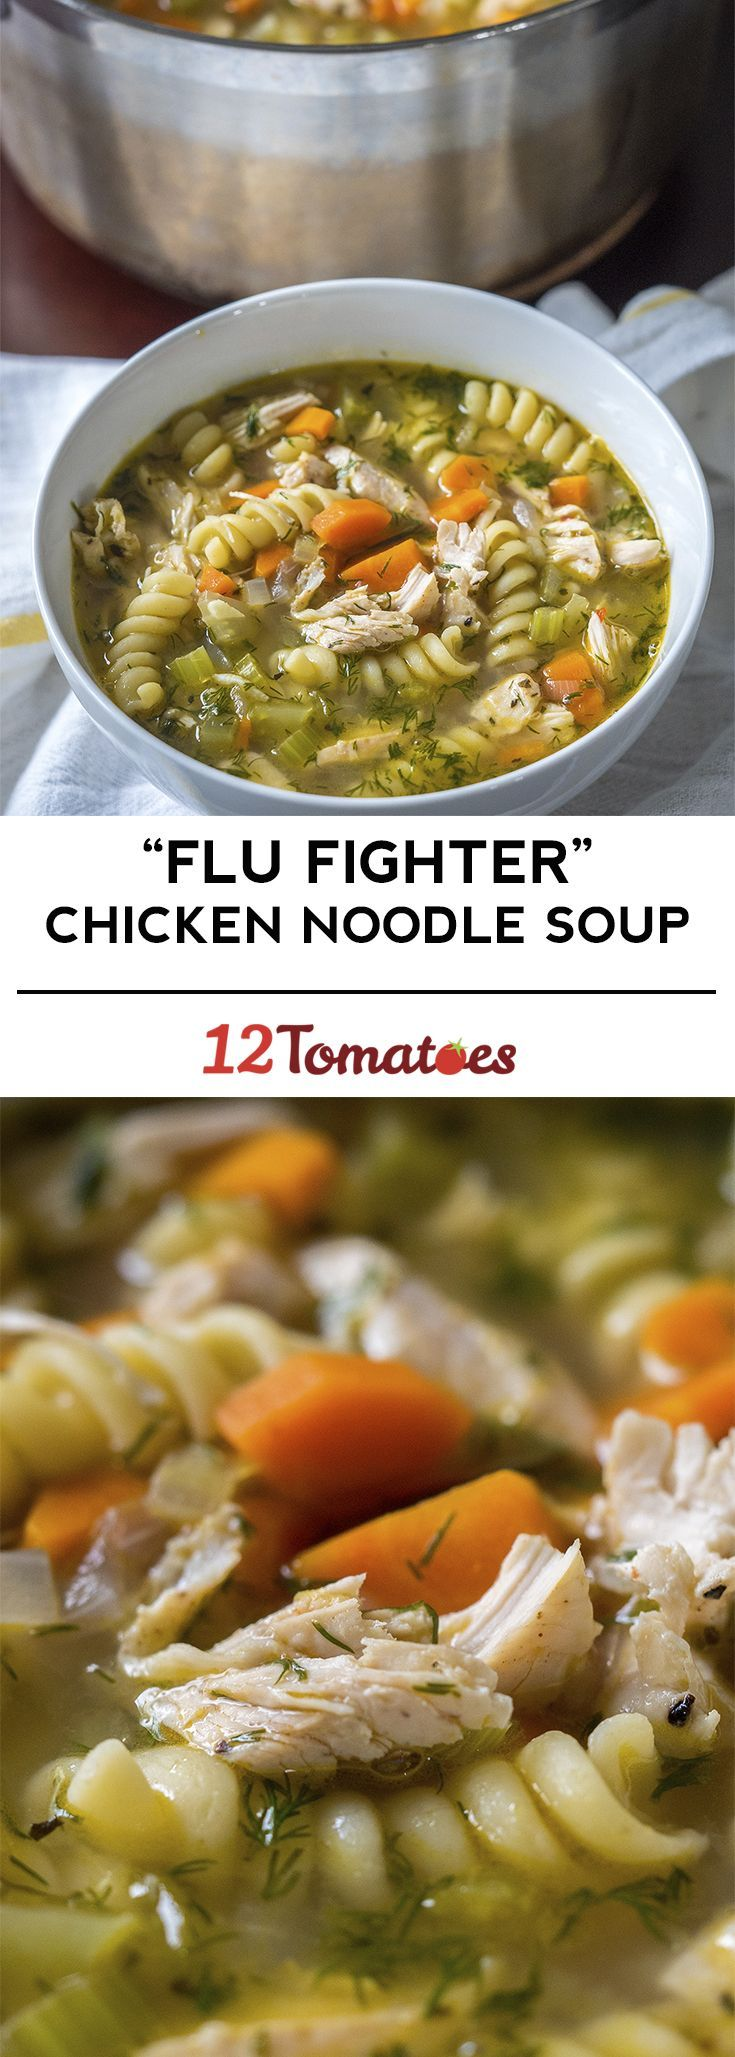 """Flu Fighter"" Chicken Noodle Soup ~ Whenever we feel ourselves coming down with a cold, this is the first thing we make!"